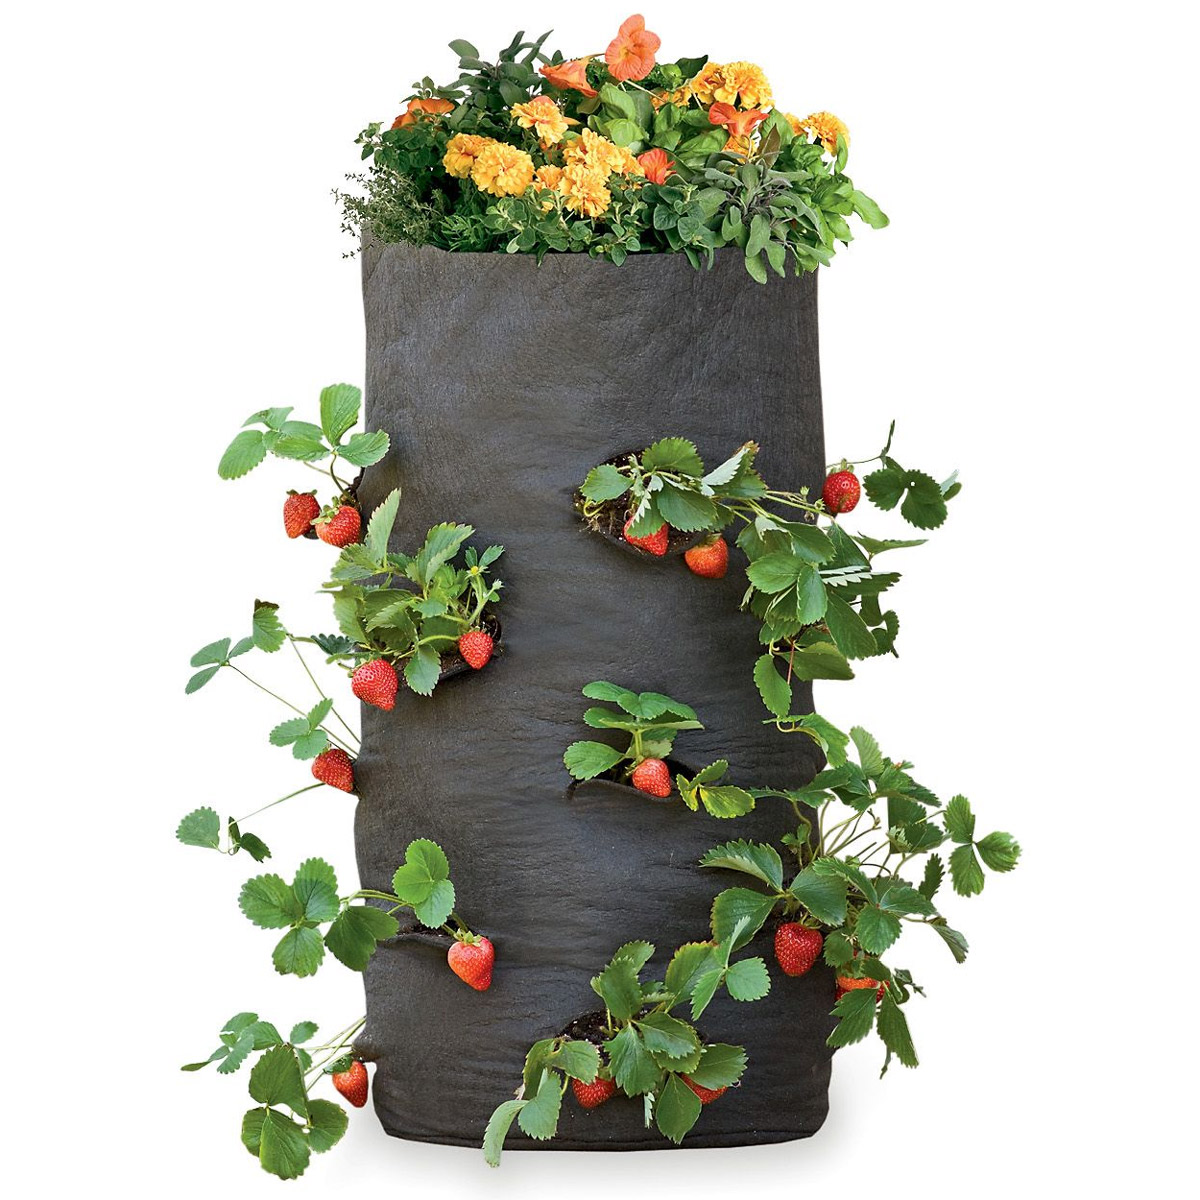 Large Head Planters Grow Bags Tomatoes Peppers Herbs And Potatoes The